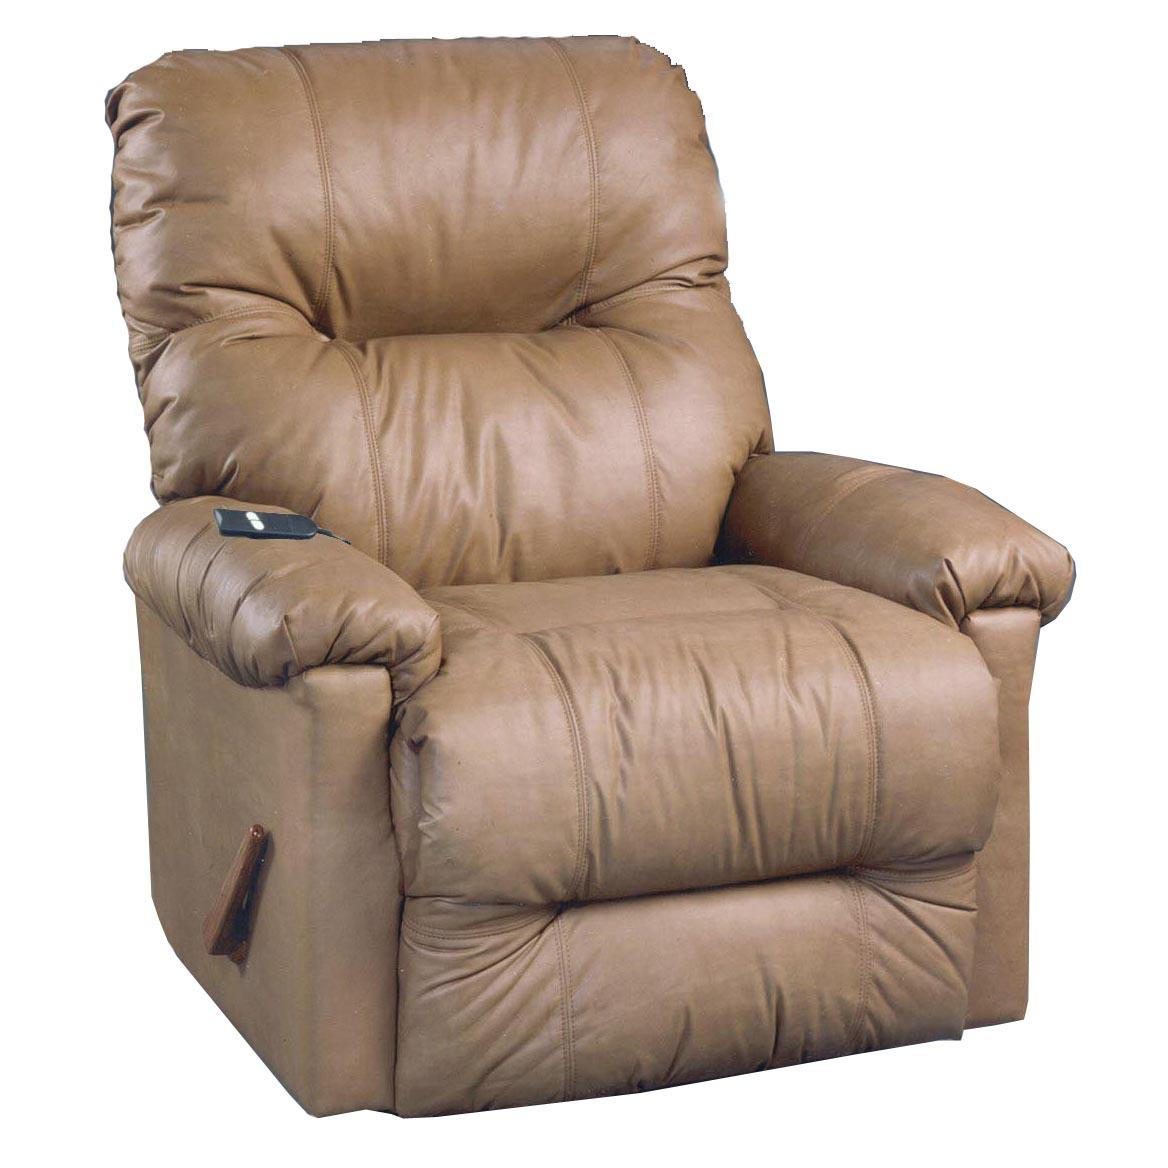 Best home furnishings recliners petite wynette power lift reclining chair fashion furniture - Fashionable recliners ...